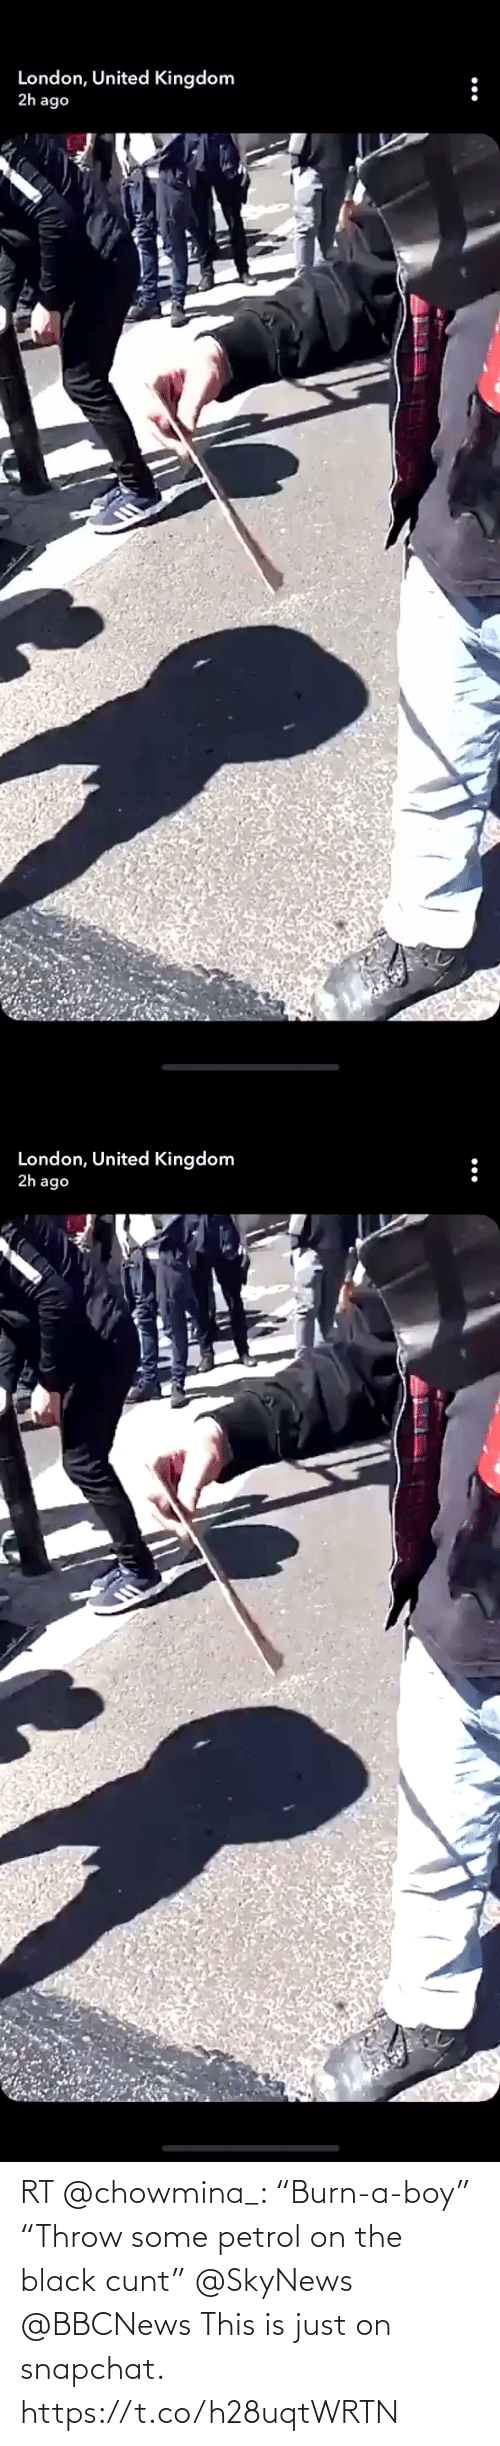 "Some: RT @chowmina_: ""Burn-a-boy"" ""Throw some petrol on the black cunt""  @SkyNews @BBCNews  This is just on snapchat. https://t.co/h28uqtWRTN"